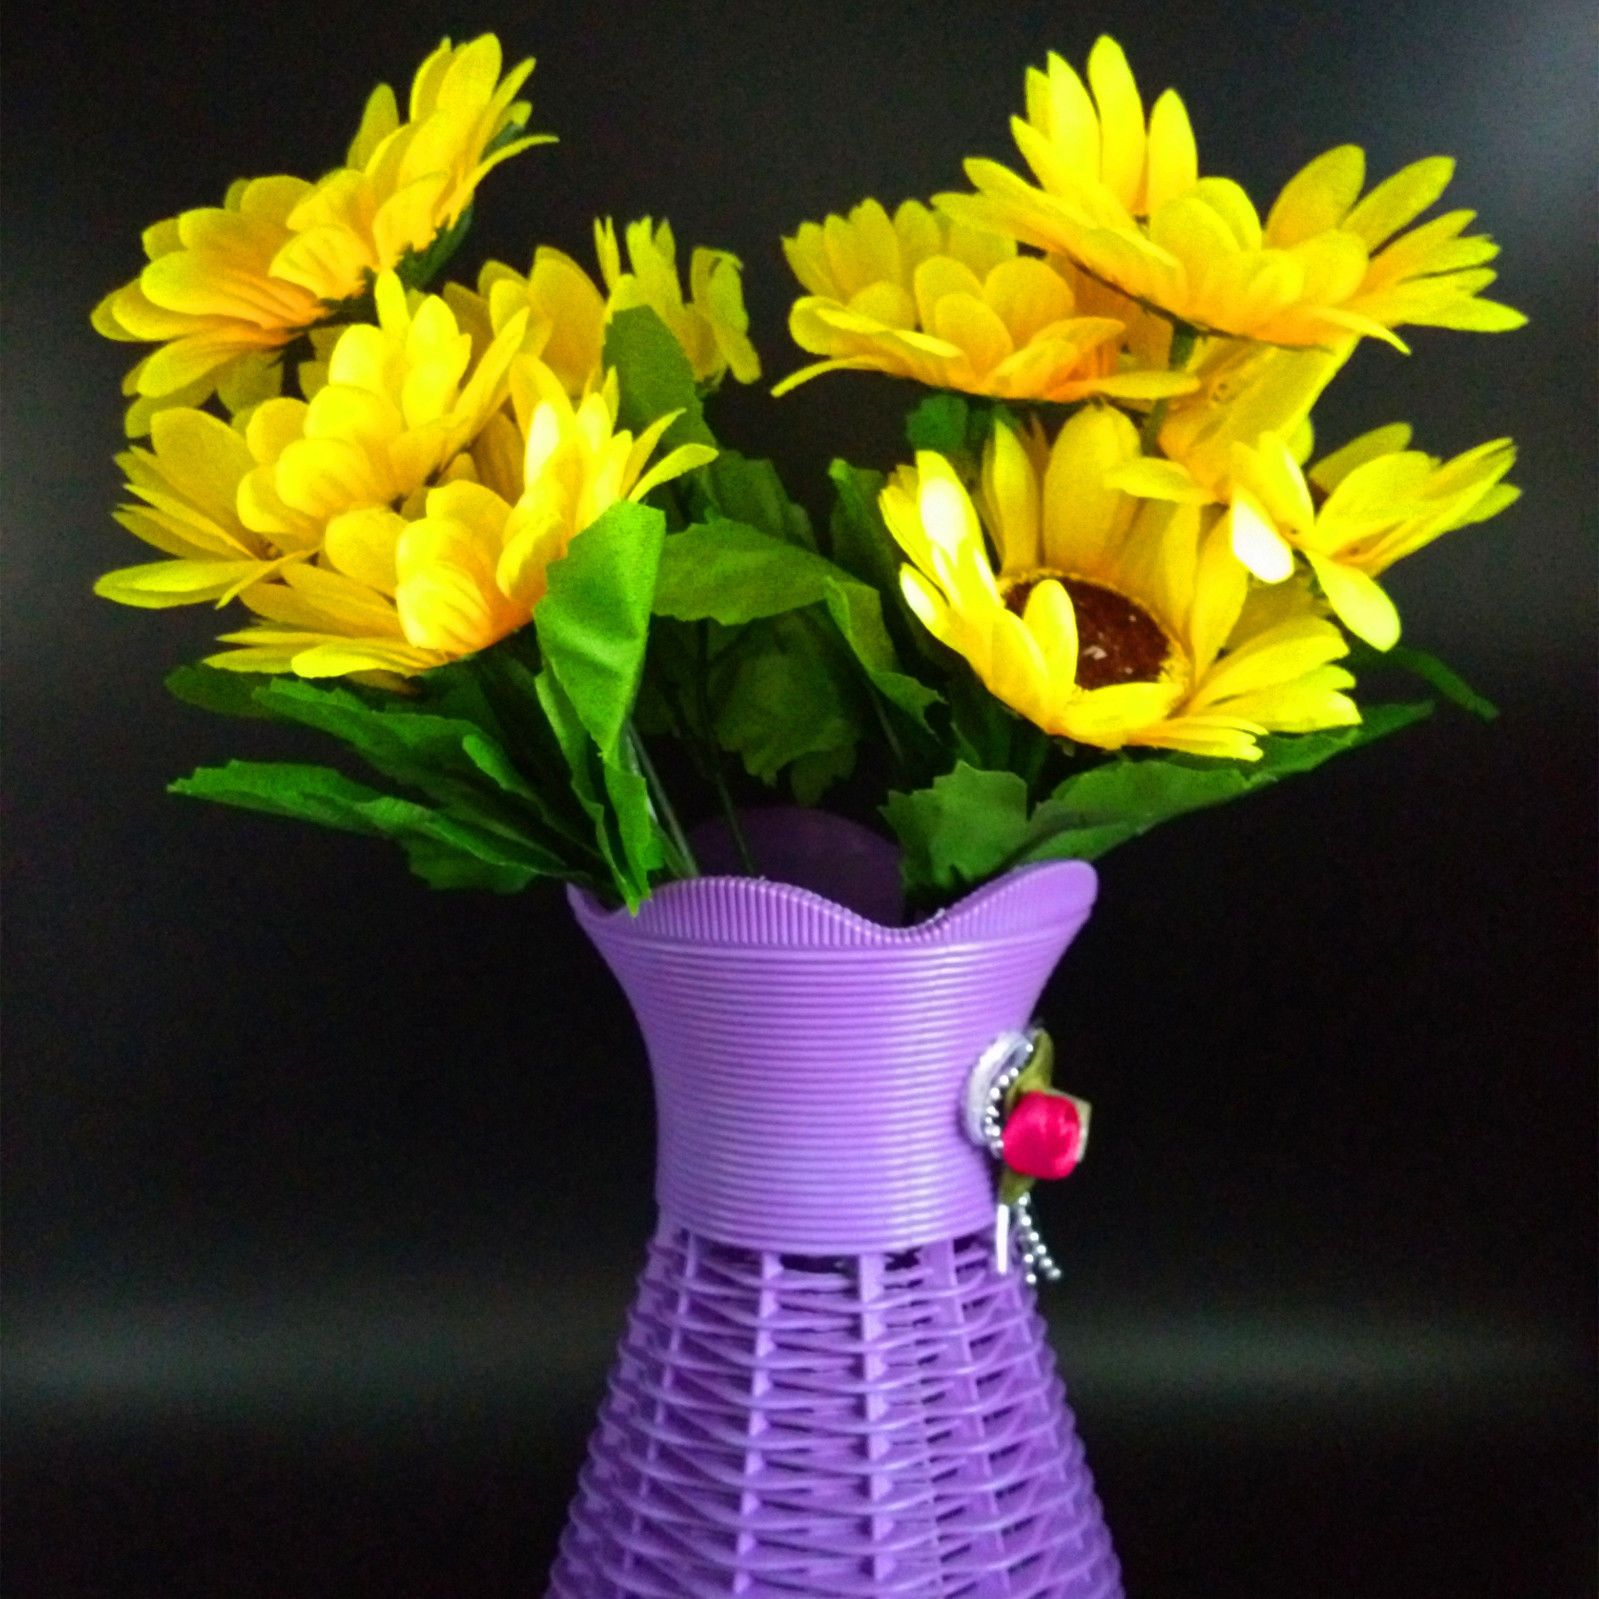 2 Bunchs Artificial Flower 10 Heads Sunflower With Purple Vase Home